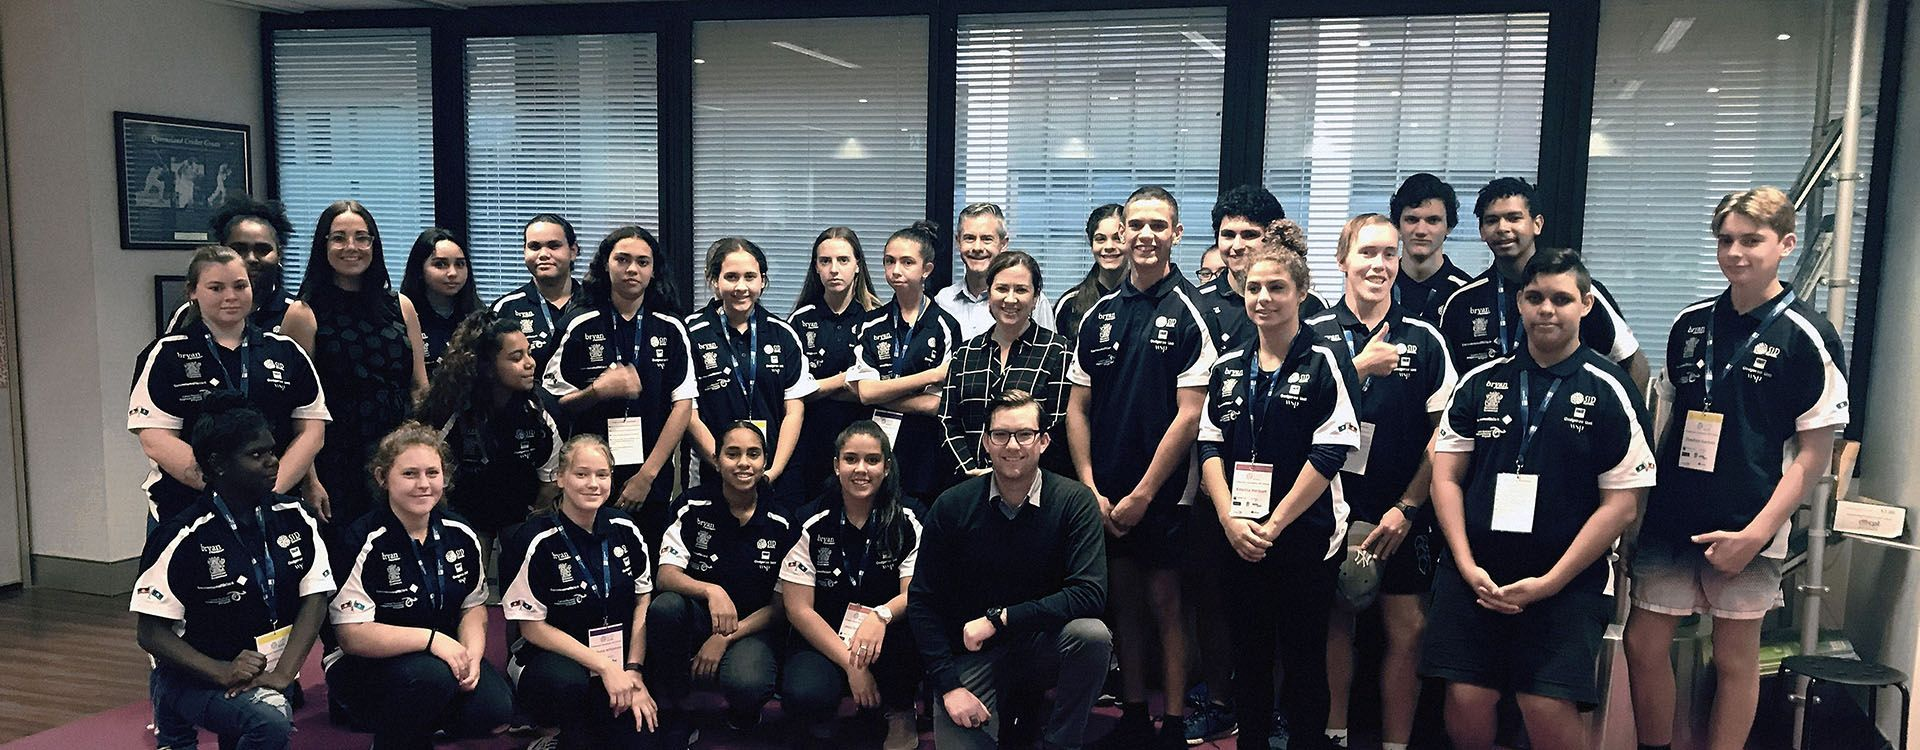 To address the under representation of Indigenous Australians in STEM industries, WSP and QUT established the Science and Infrastructure Development (SID) School in 2012.